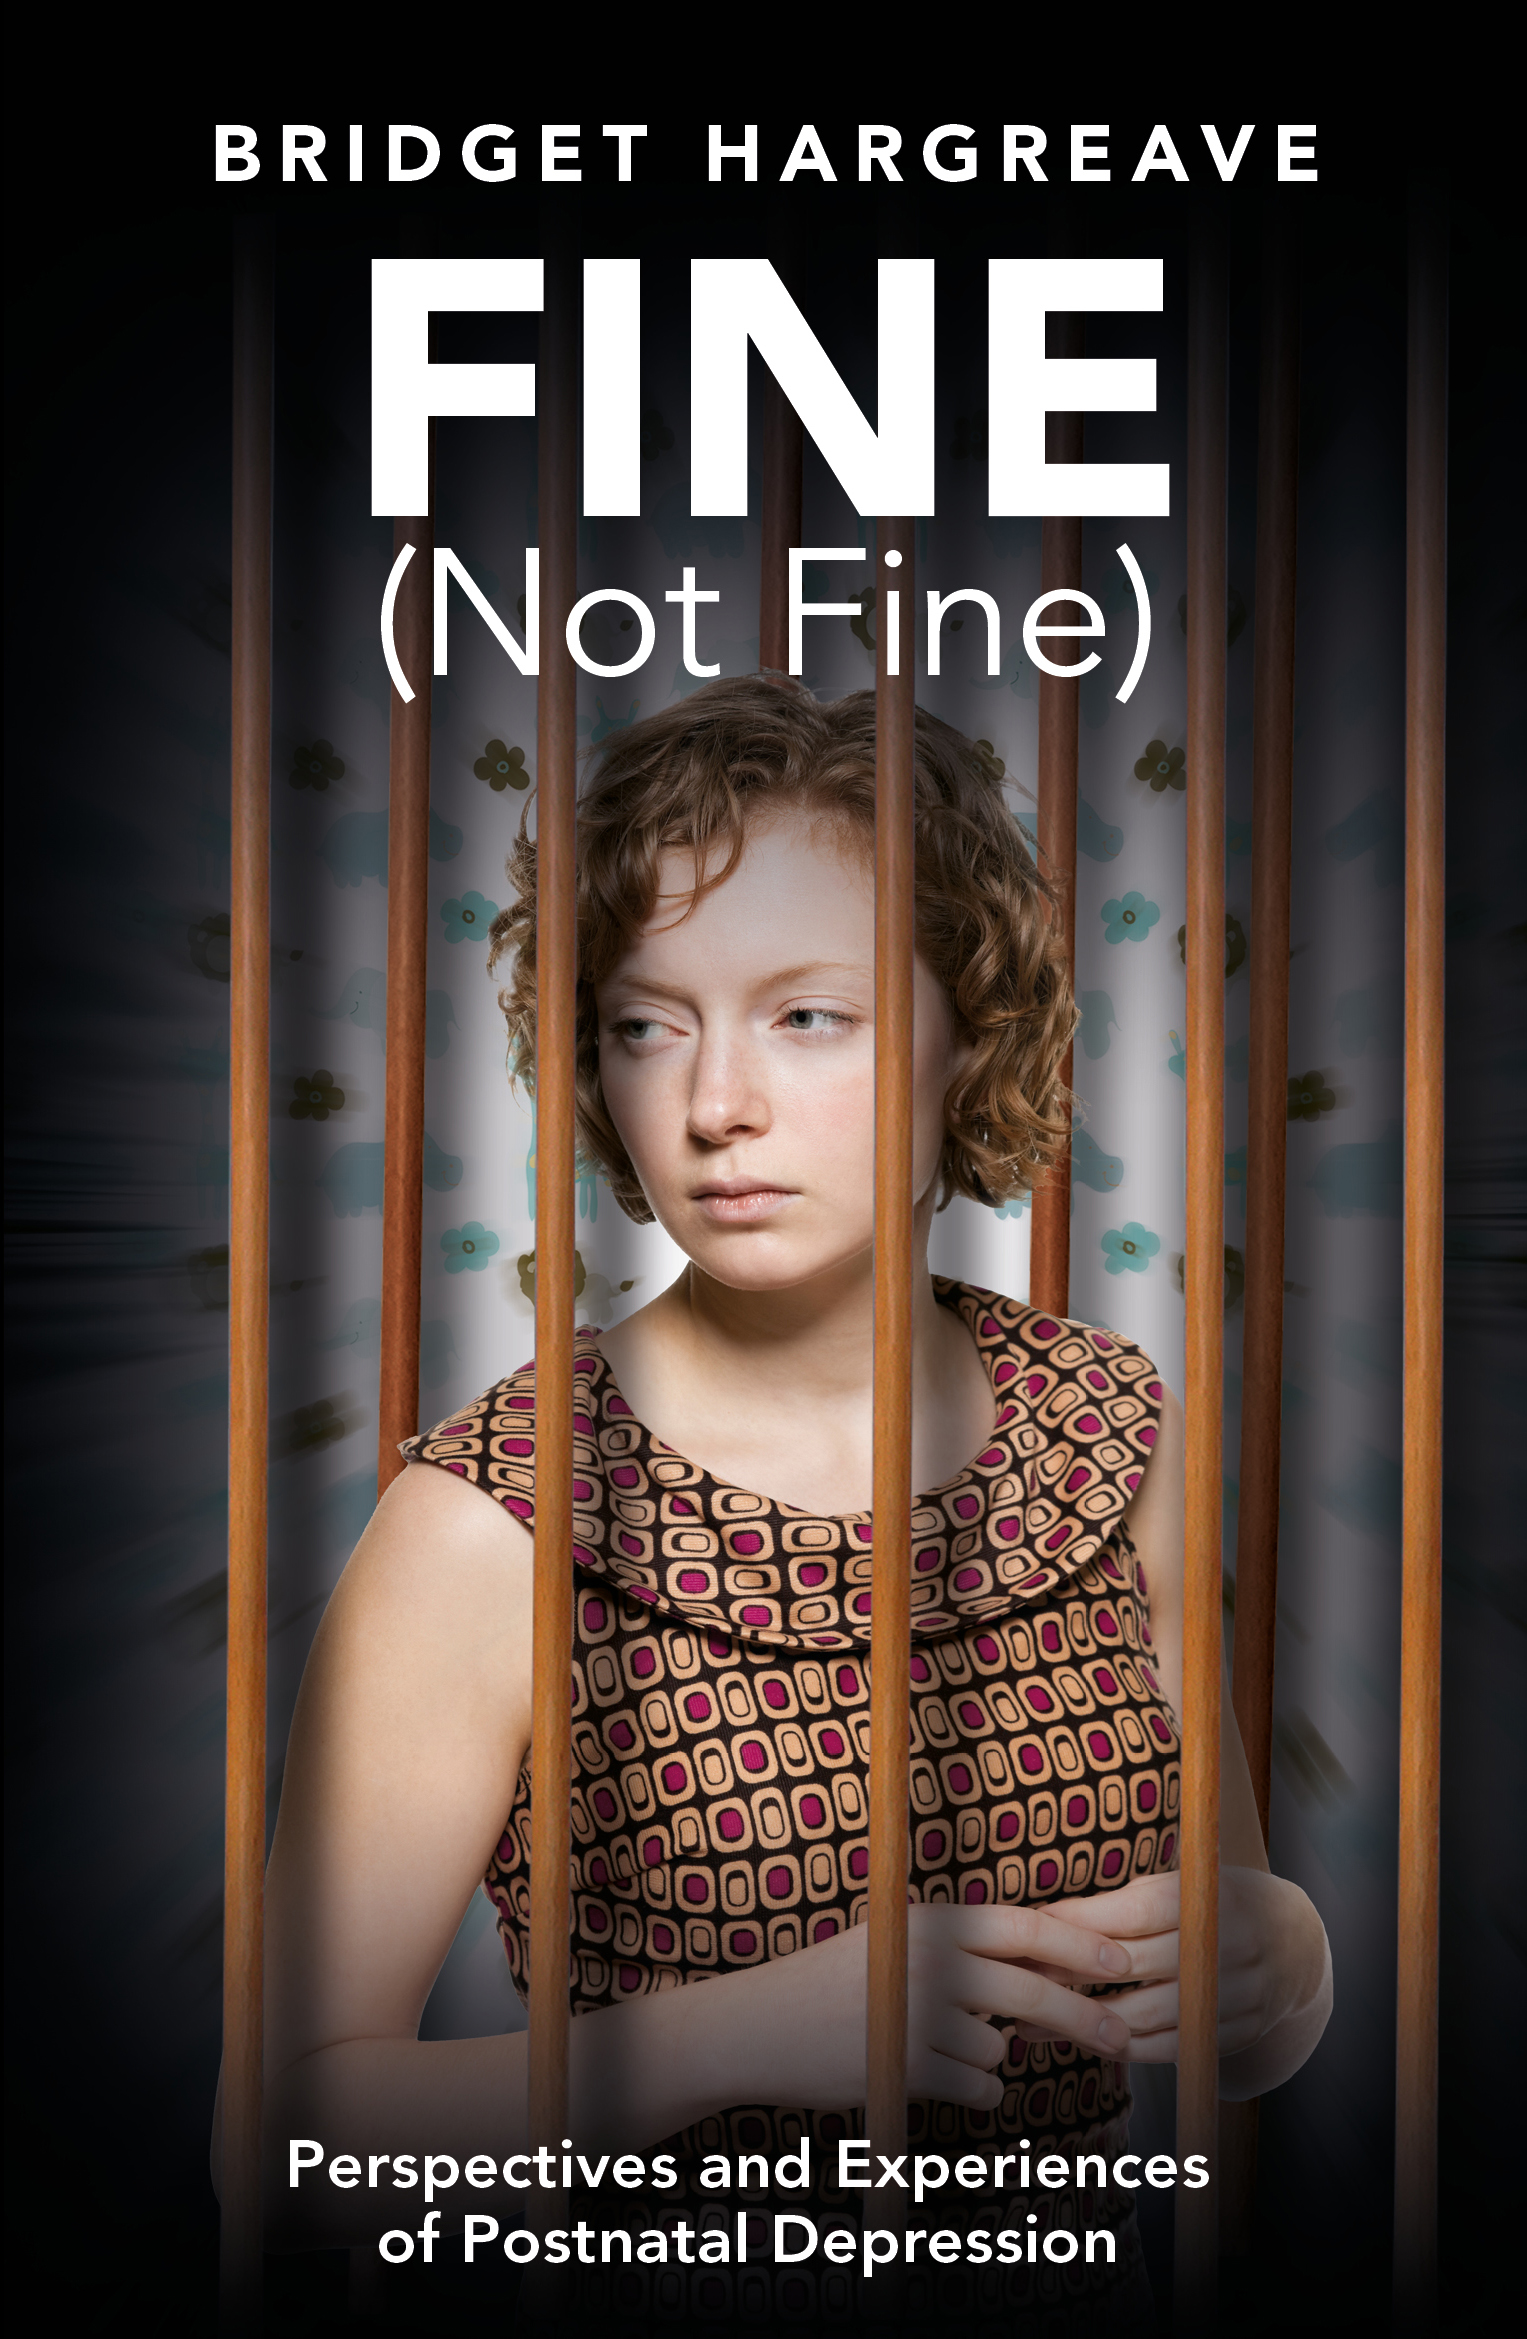 New Mothers Experiencing PND: Are You Fine (Not Fine)?